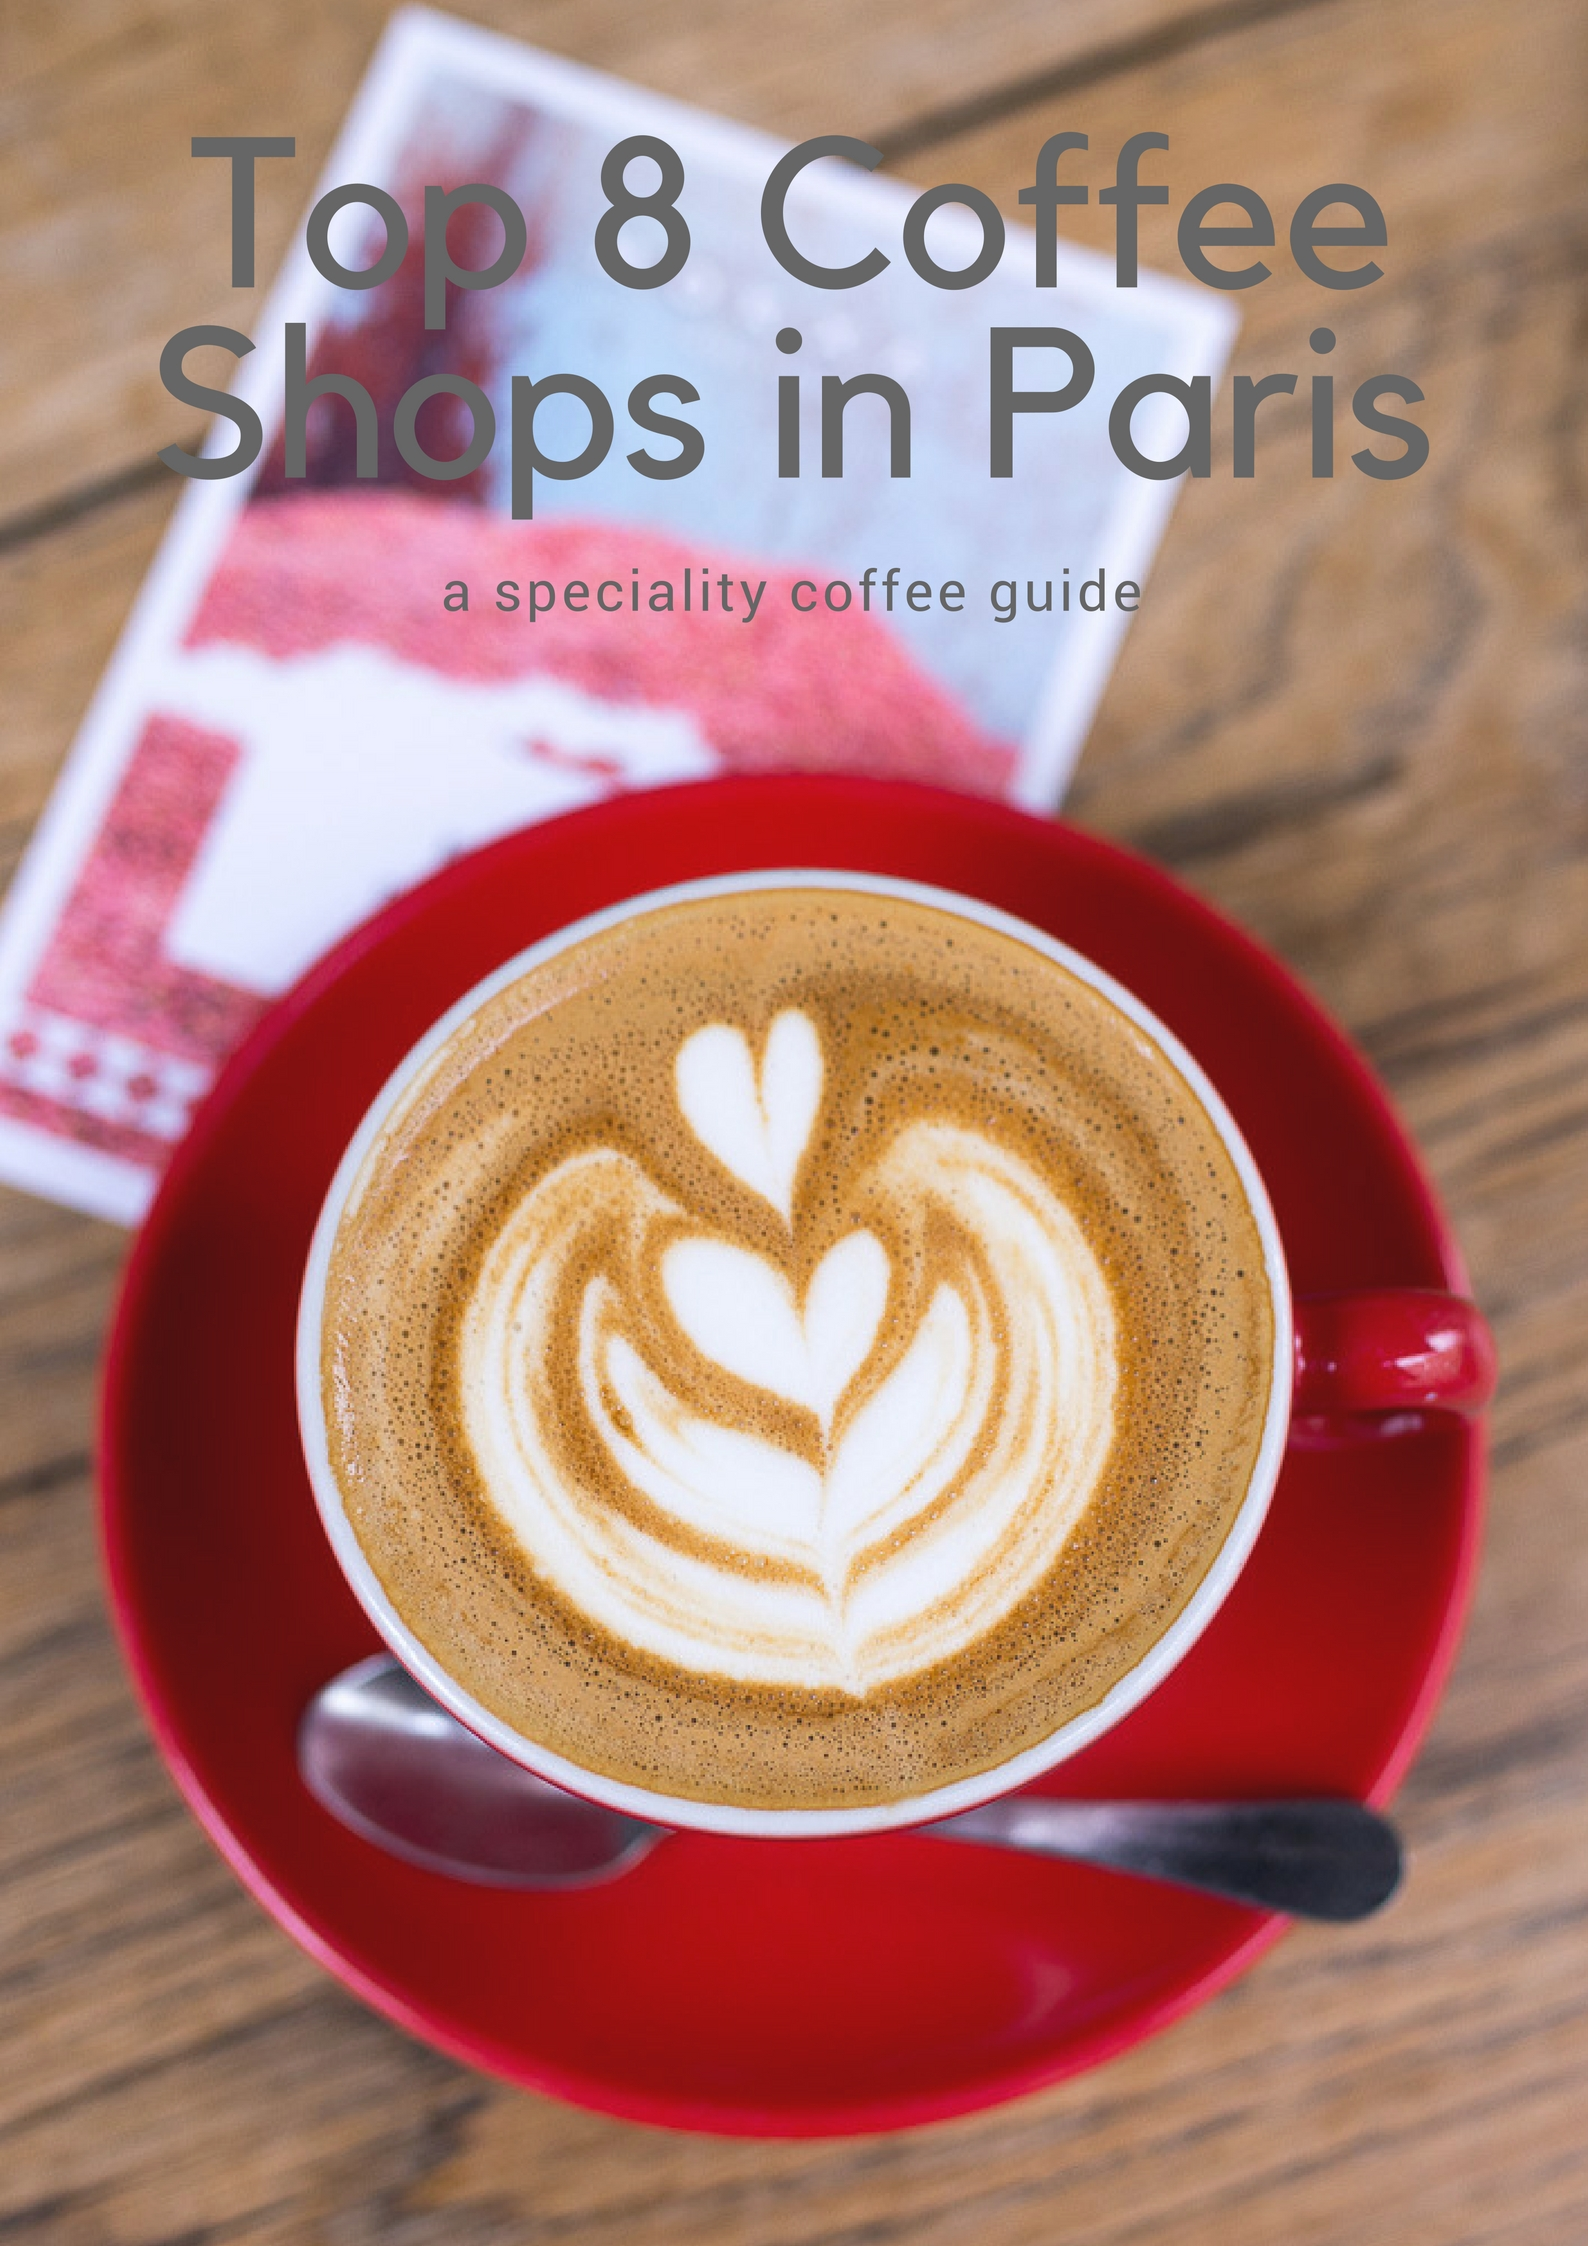 Top 8 Coffee Shops in Paris | A Speciality Coffee Guide